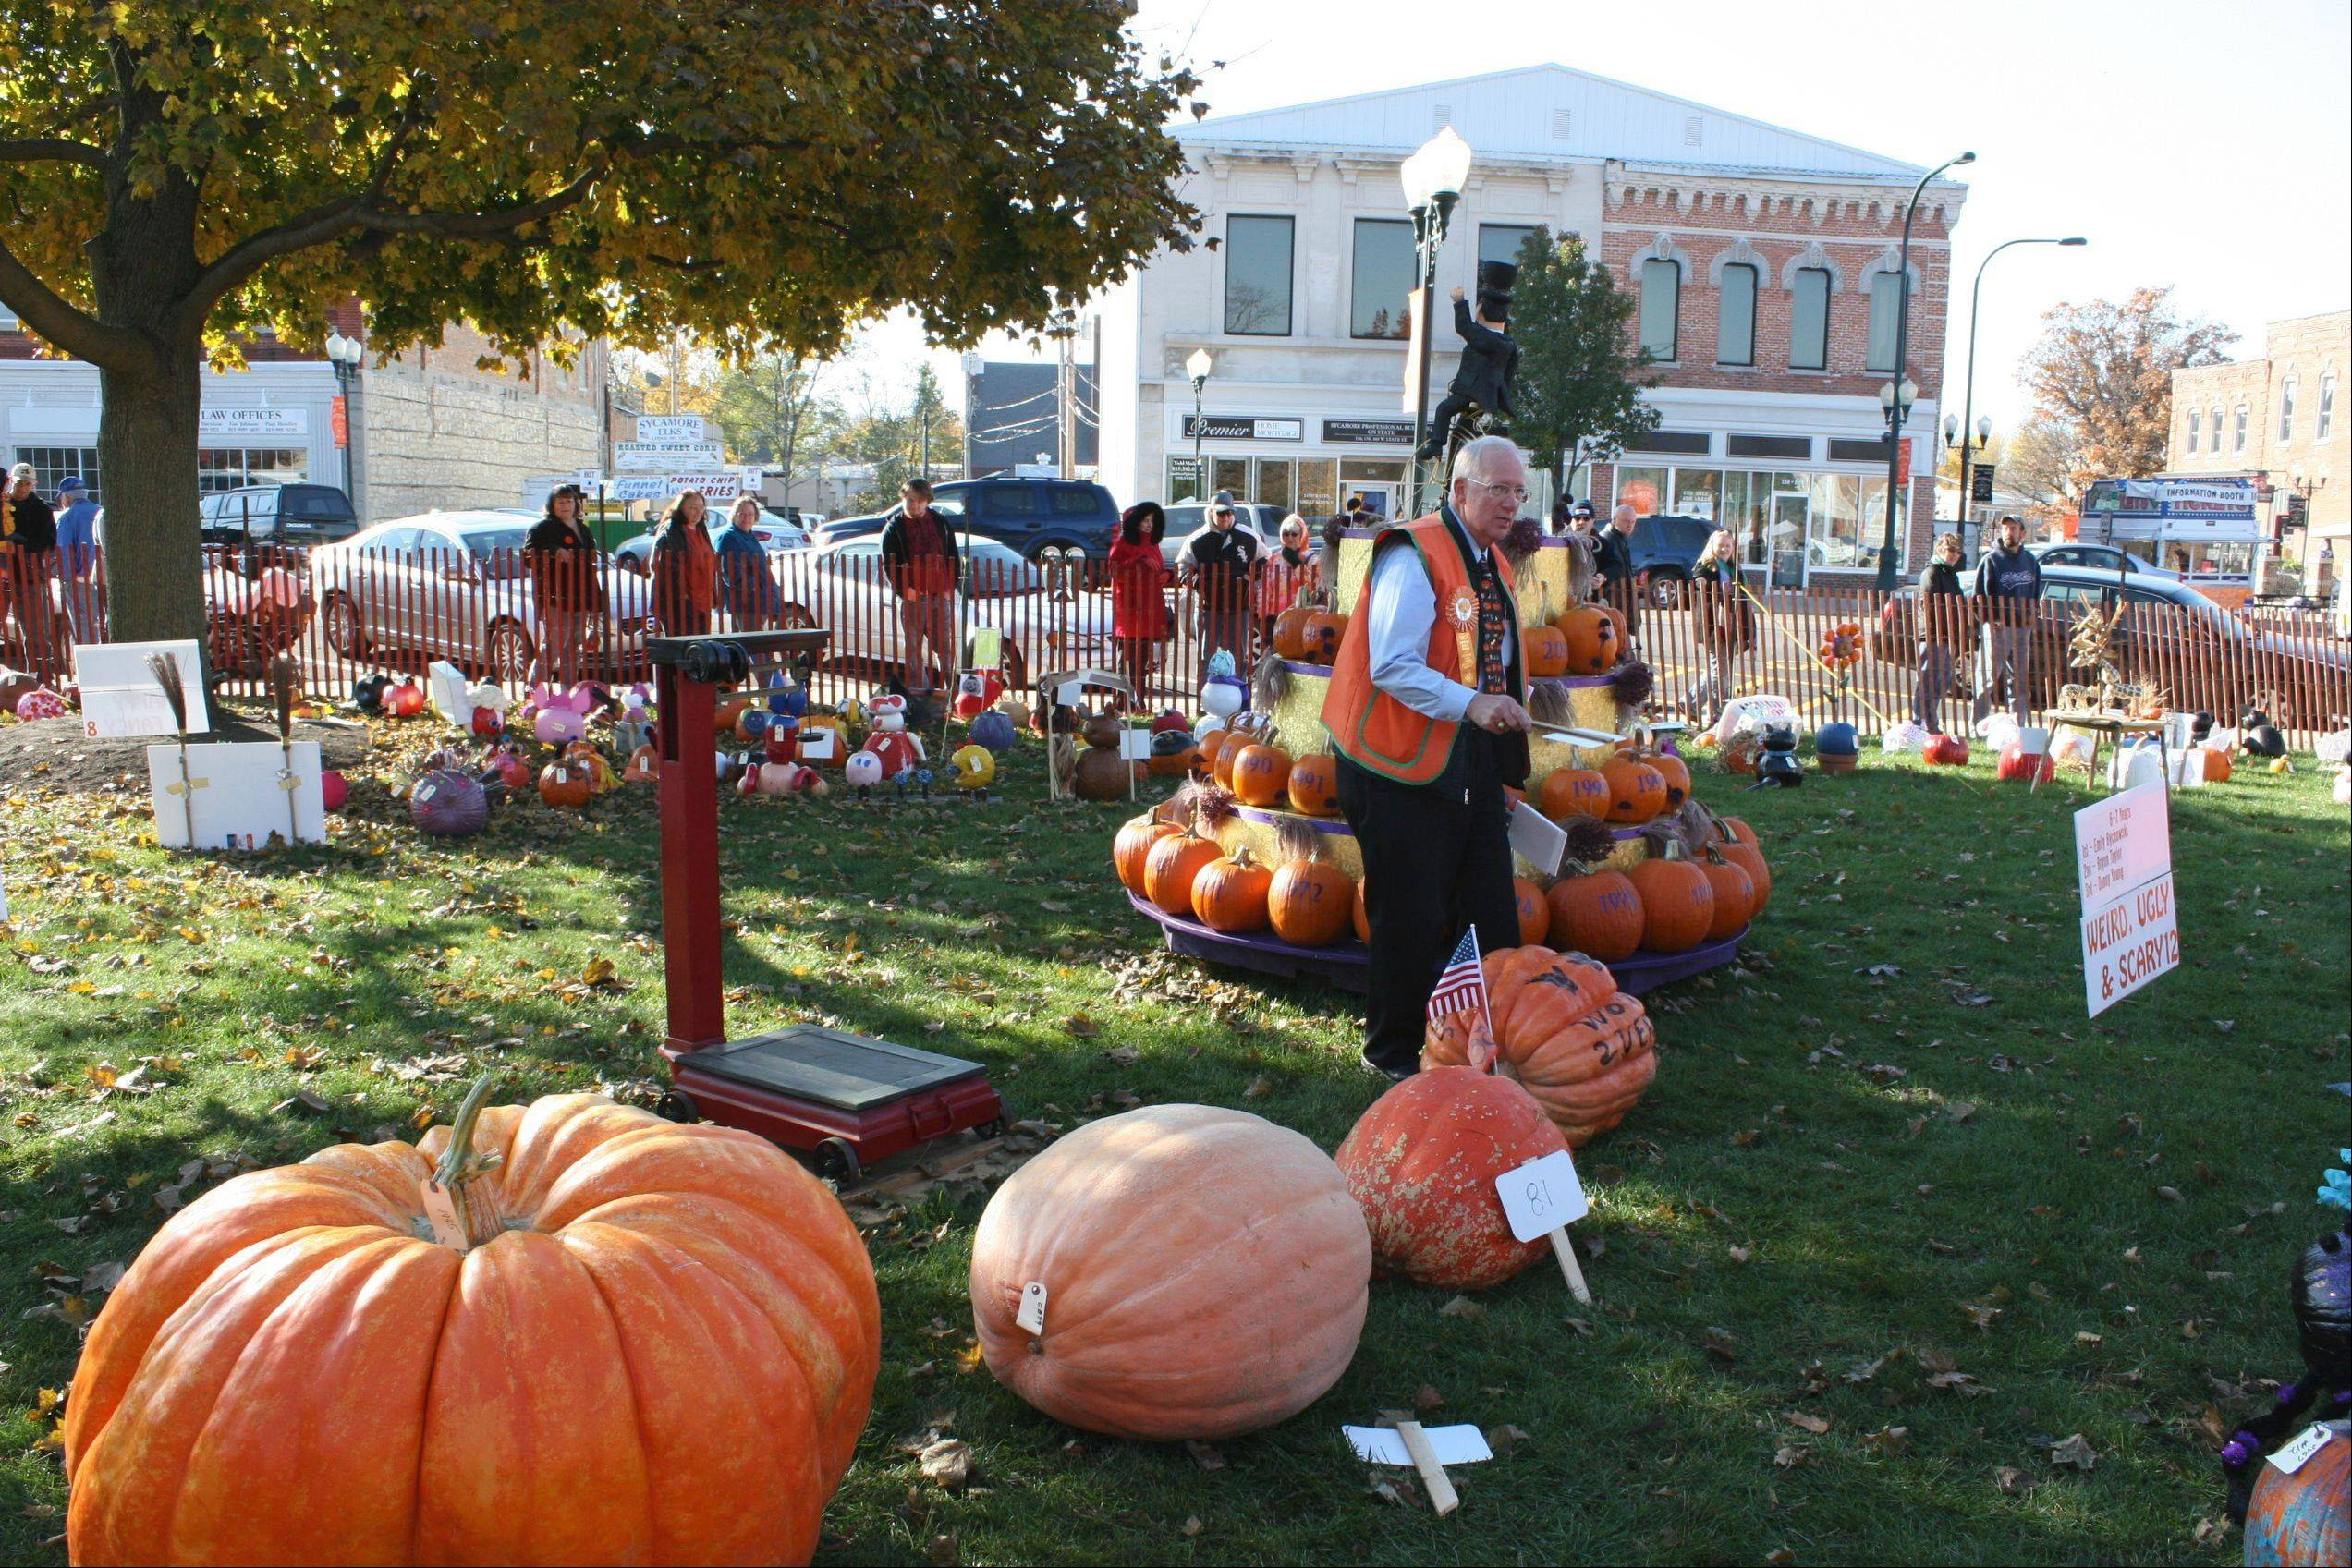 A display of pumpkins is part of the fun at the annual Sycamore Pumpkin Festival.